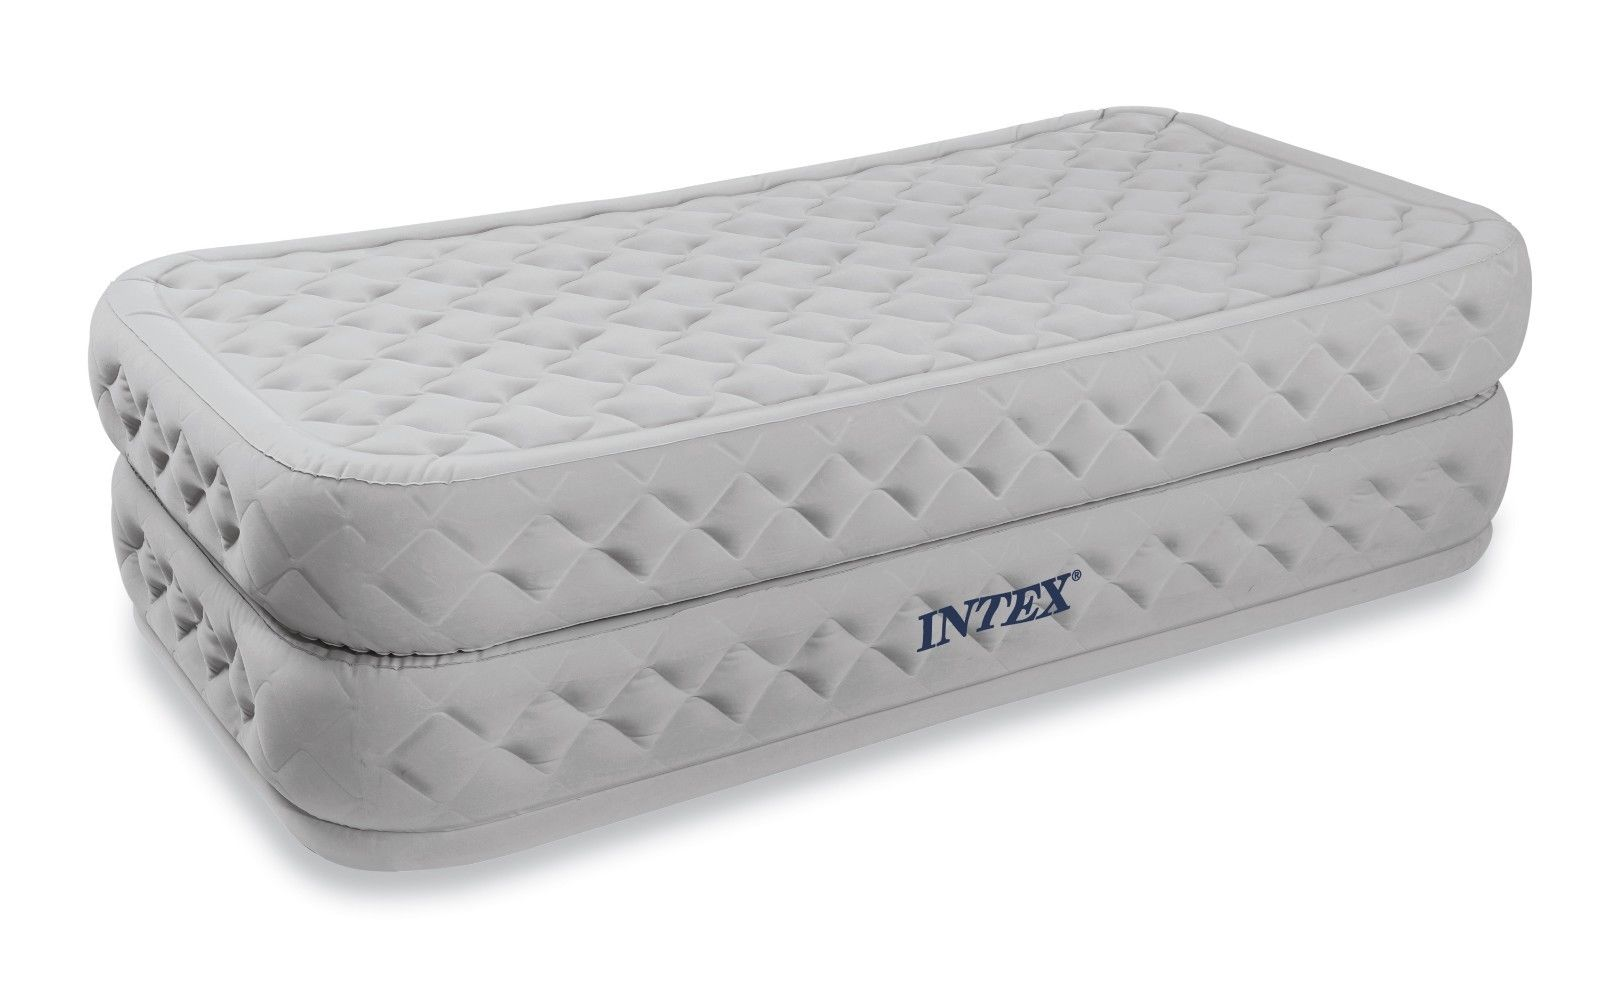 inflatable double sofa bed mattress seat w pump top rated sofas in canada intex twin supreme air flow raised airbed